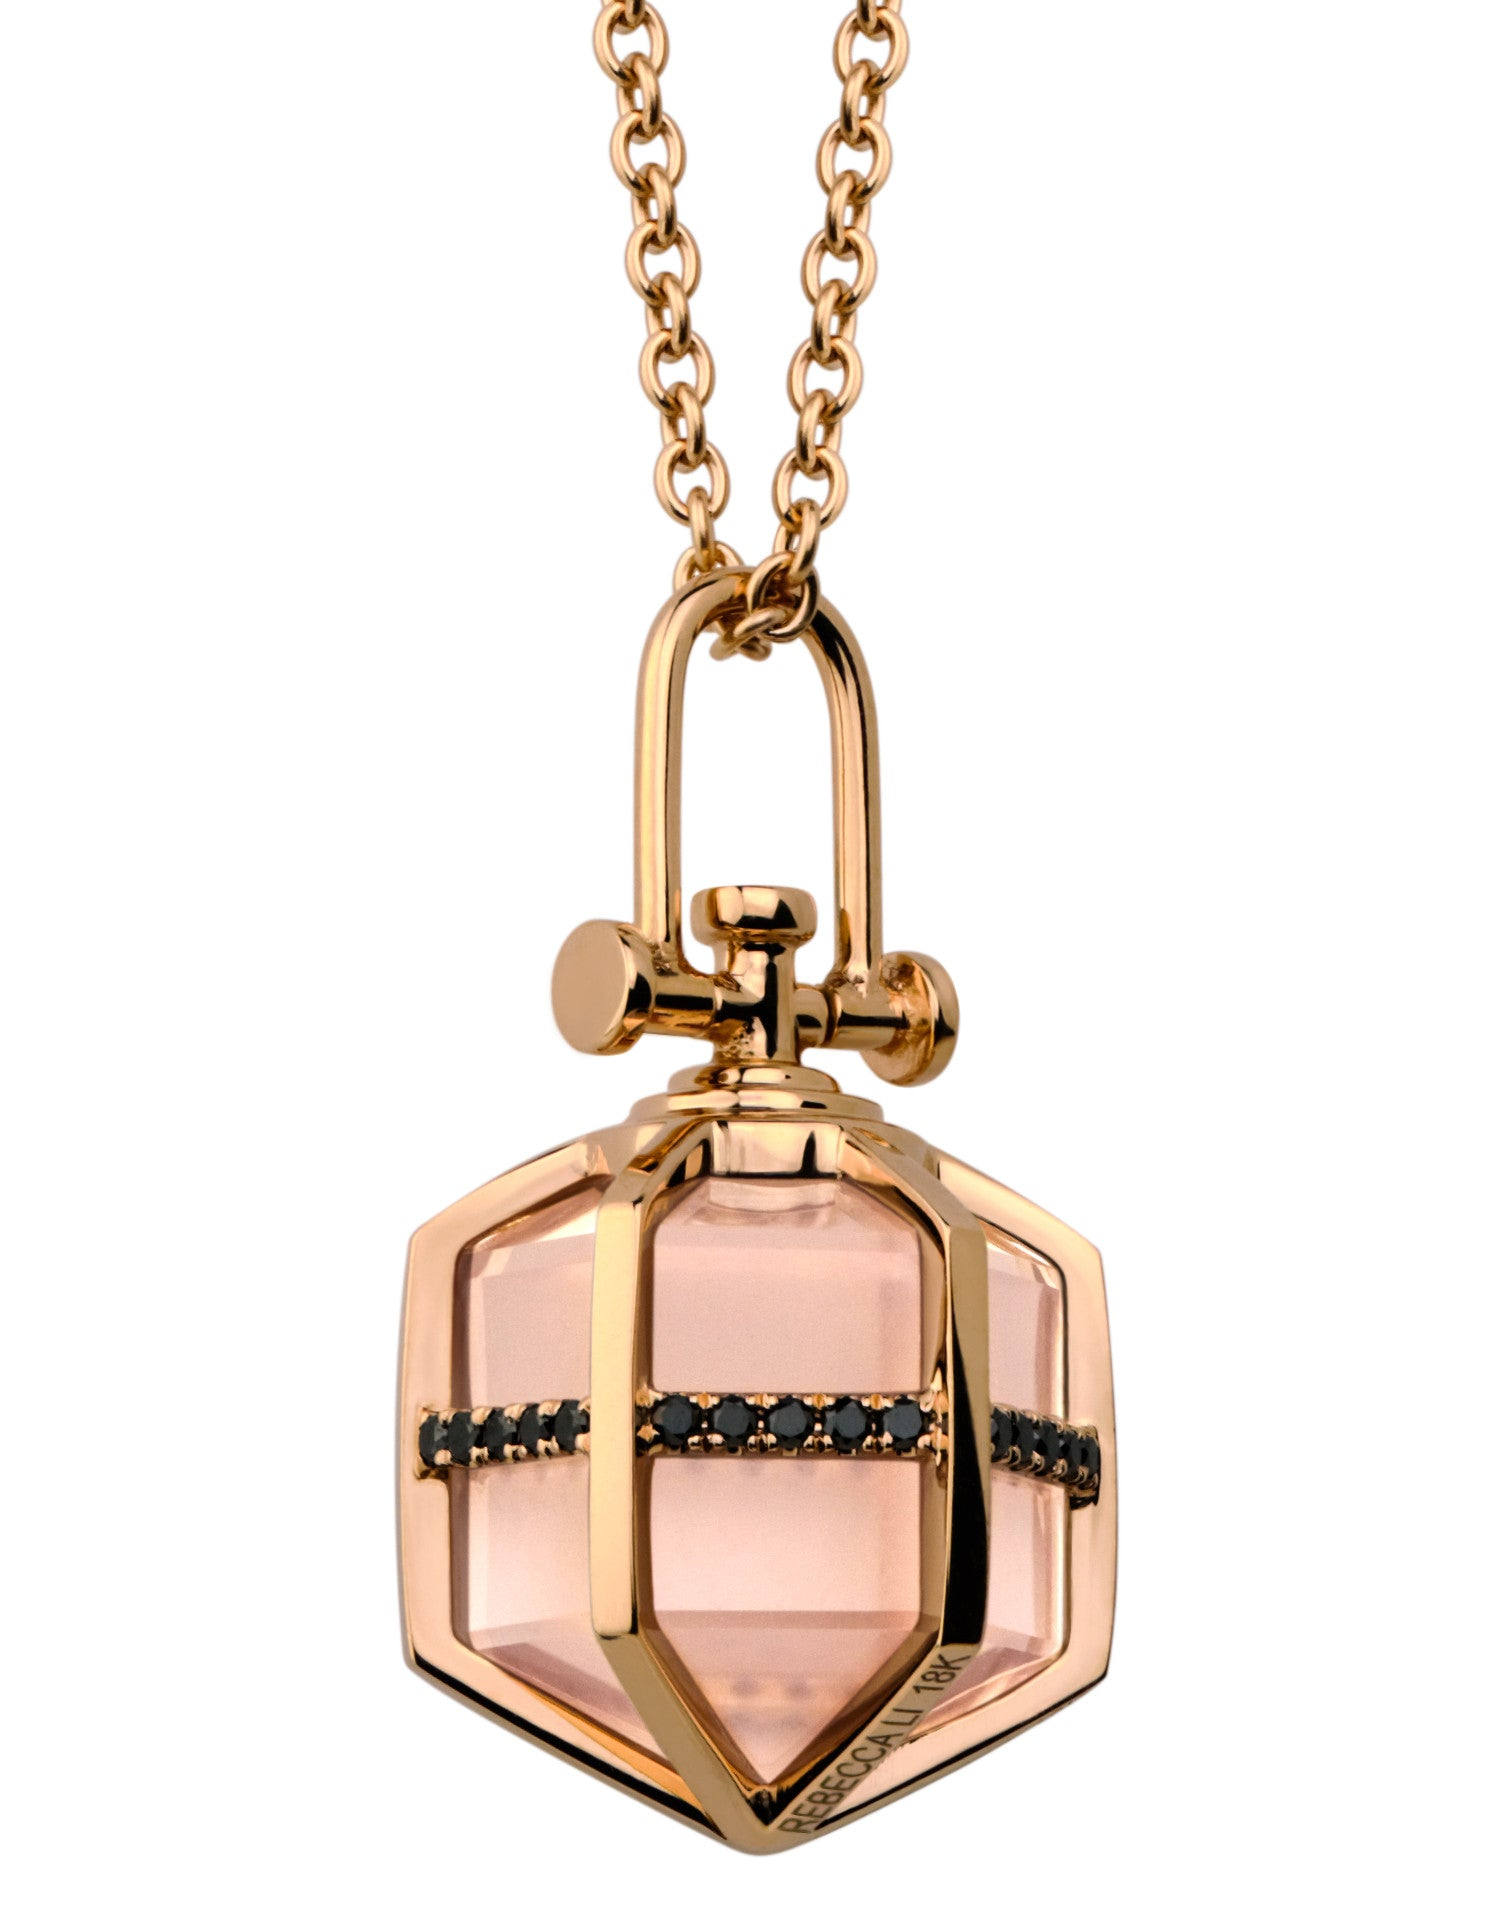 Medium 18k real rose gold pendant with black diamond and rose medium 18k real rose gold necklace and pendant with black diamond and rose quartz healing crystal aloadofball Choice Image